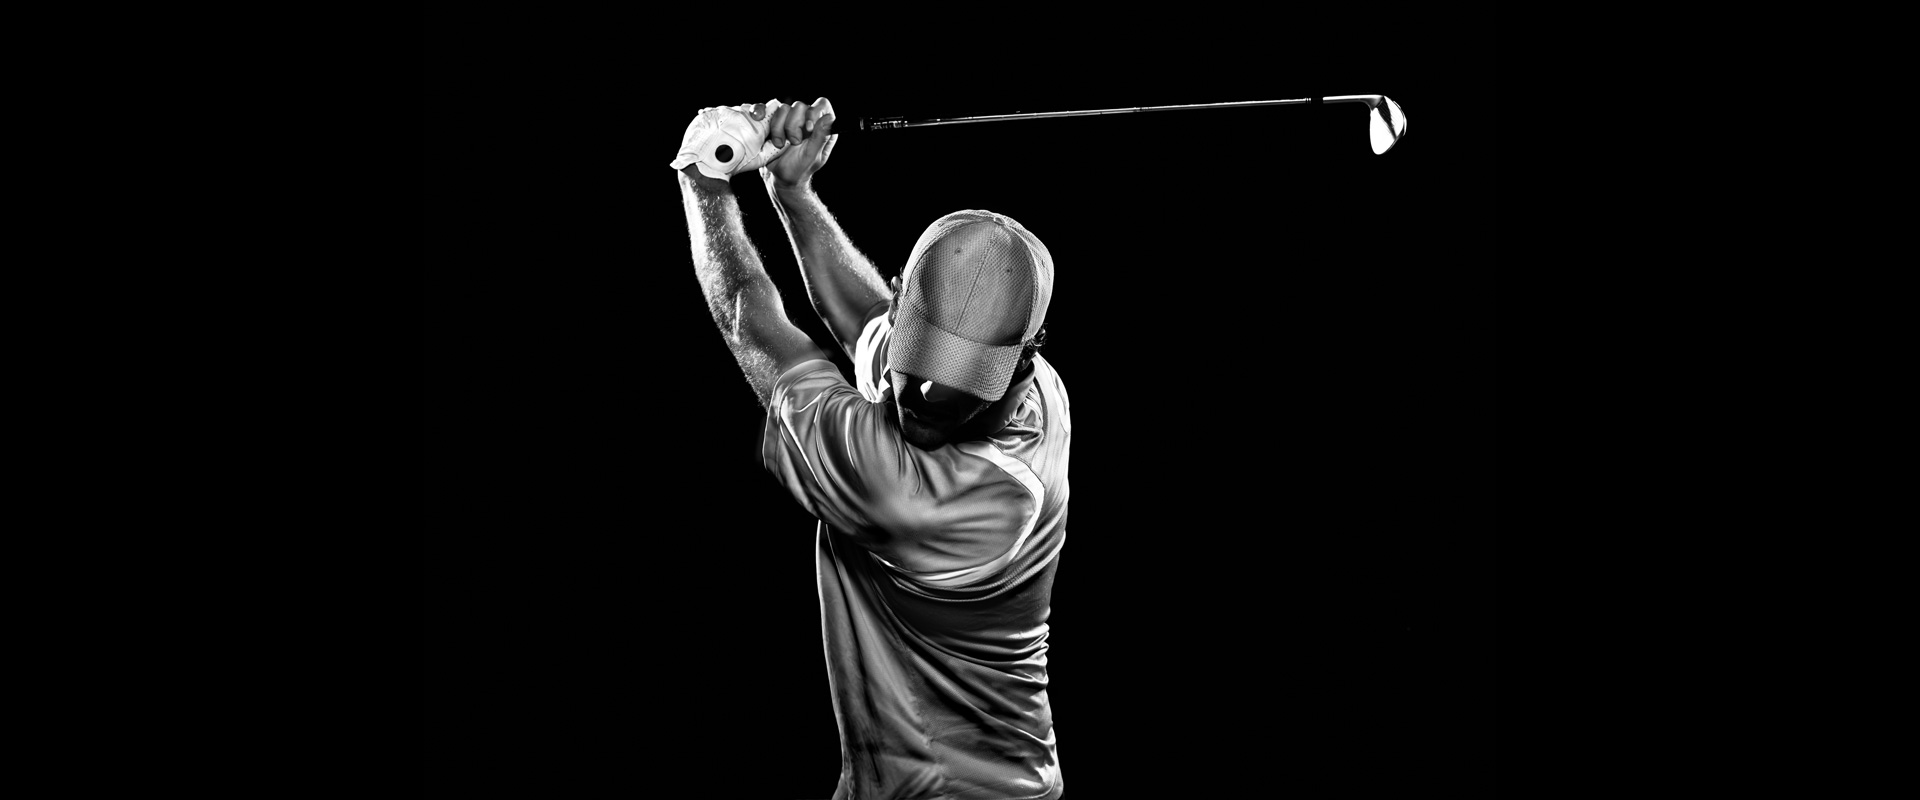 Rehab 2 Fitness - Maximize Golf Performance